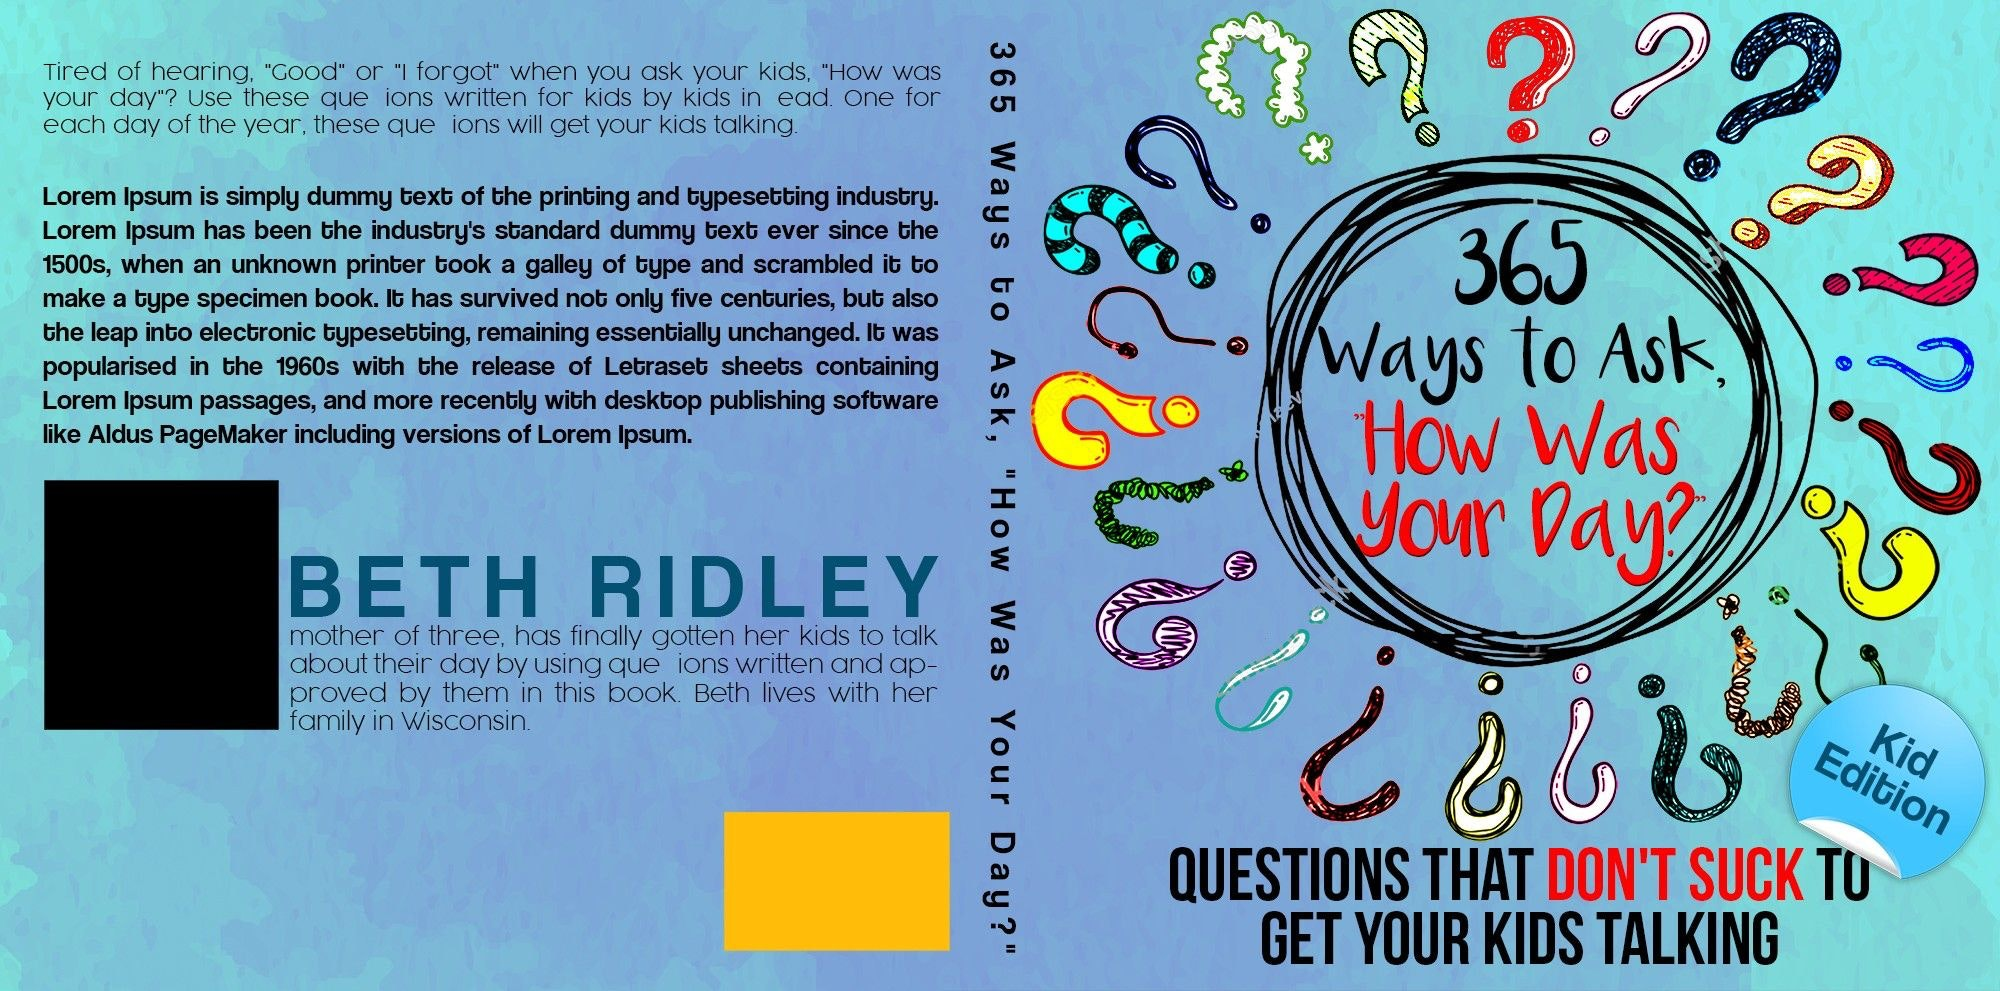 365 Ways to Ask How Was Your Day? book cover